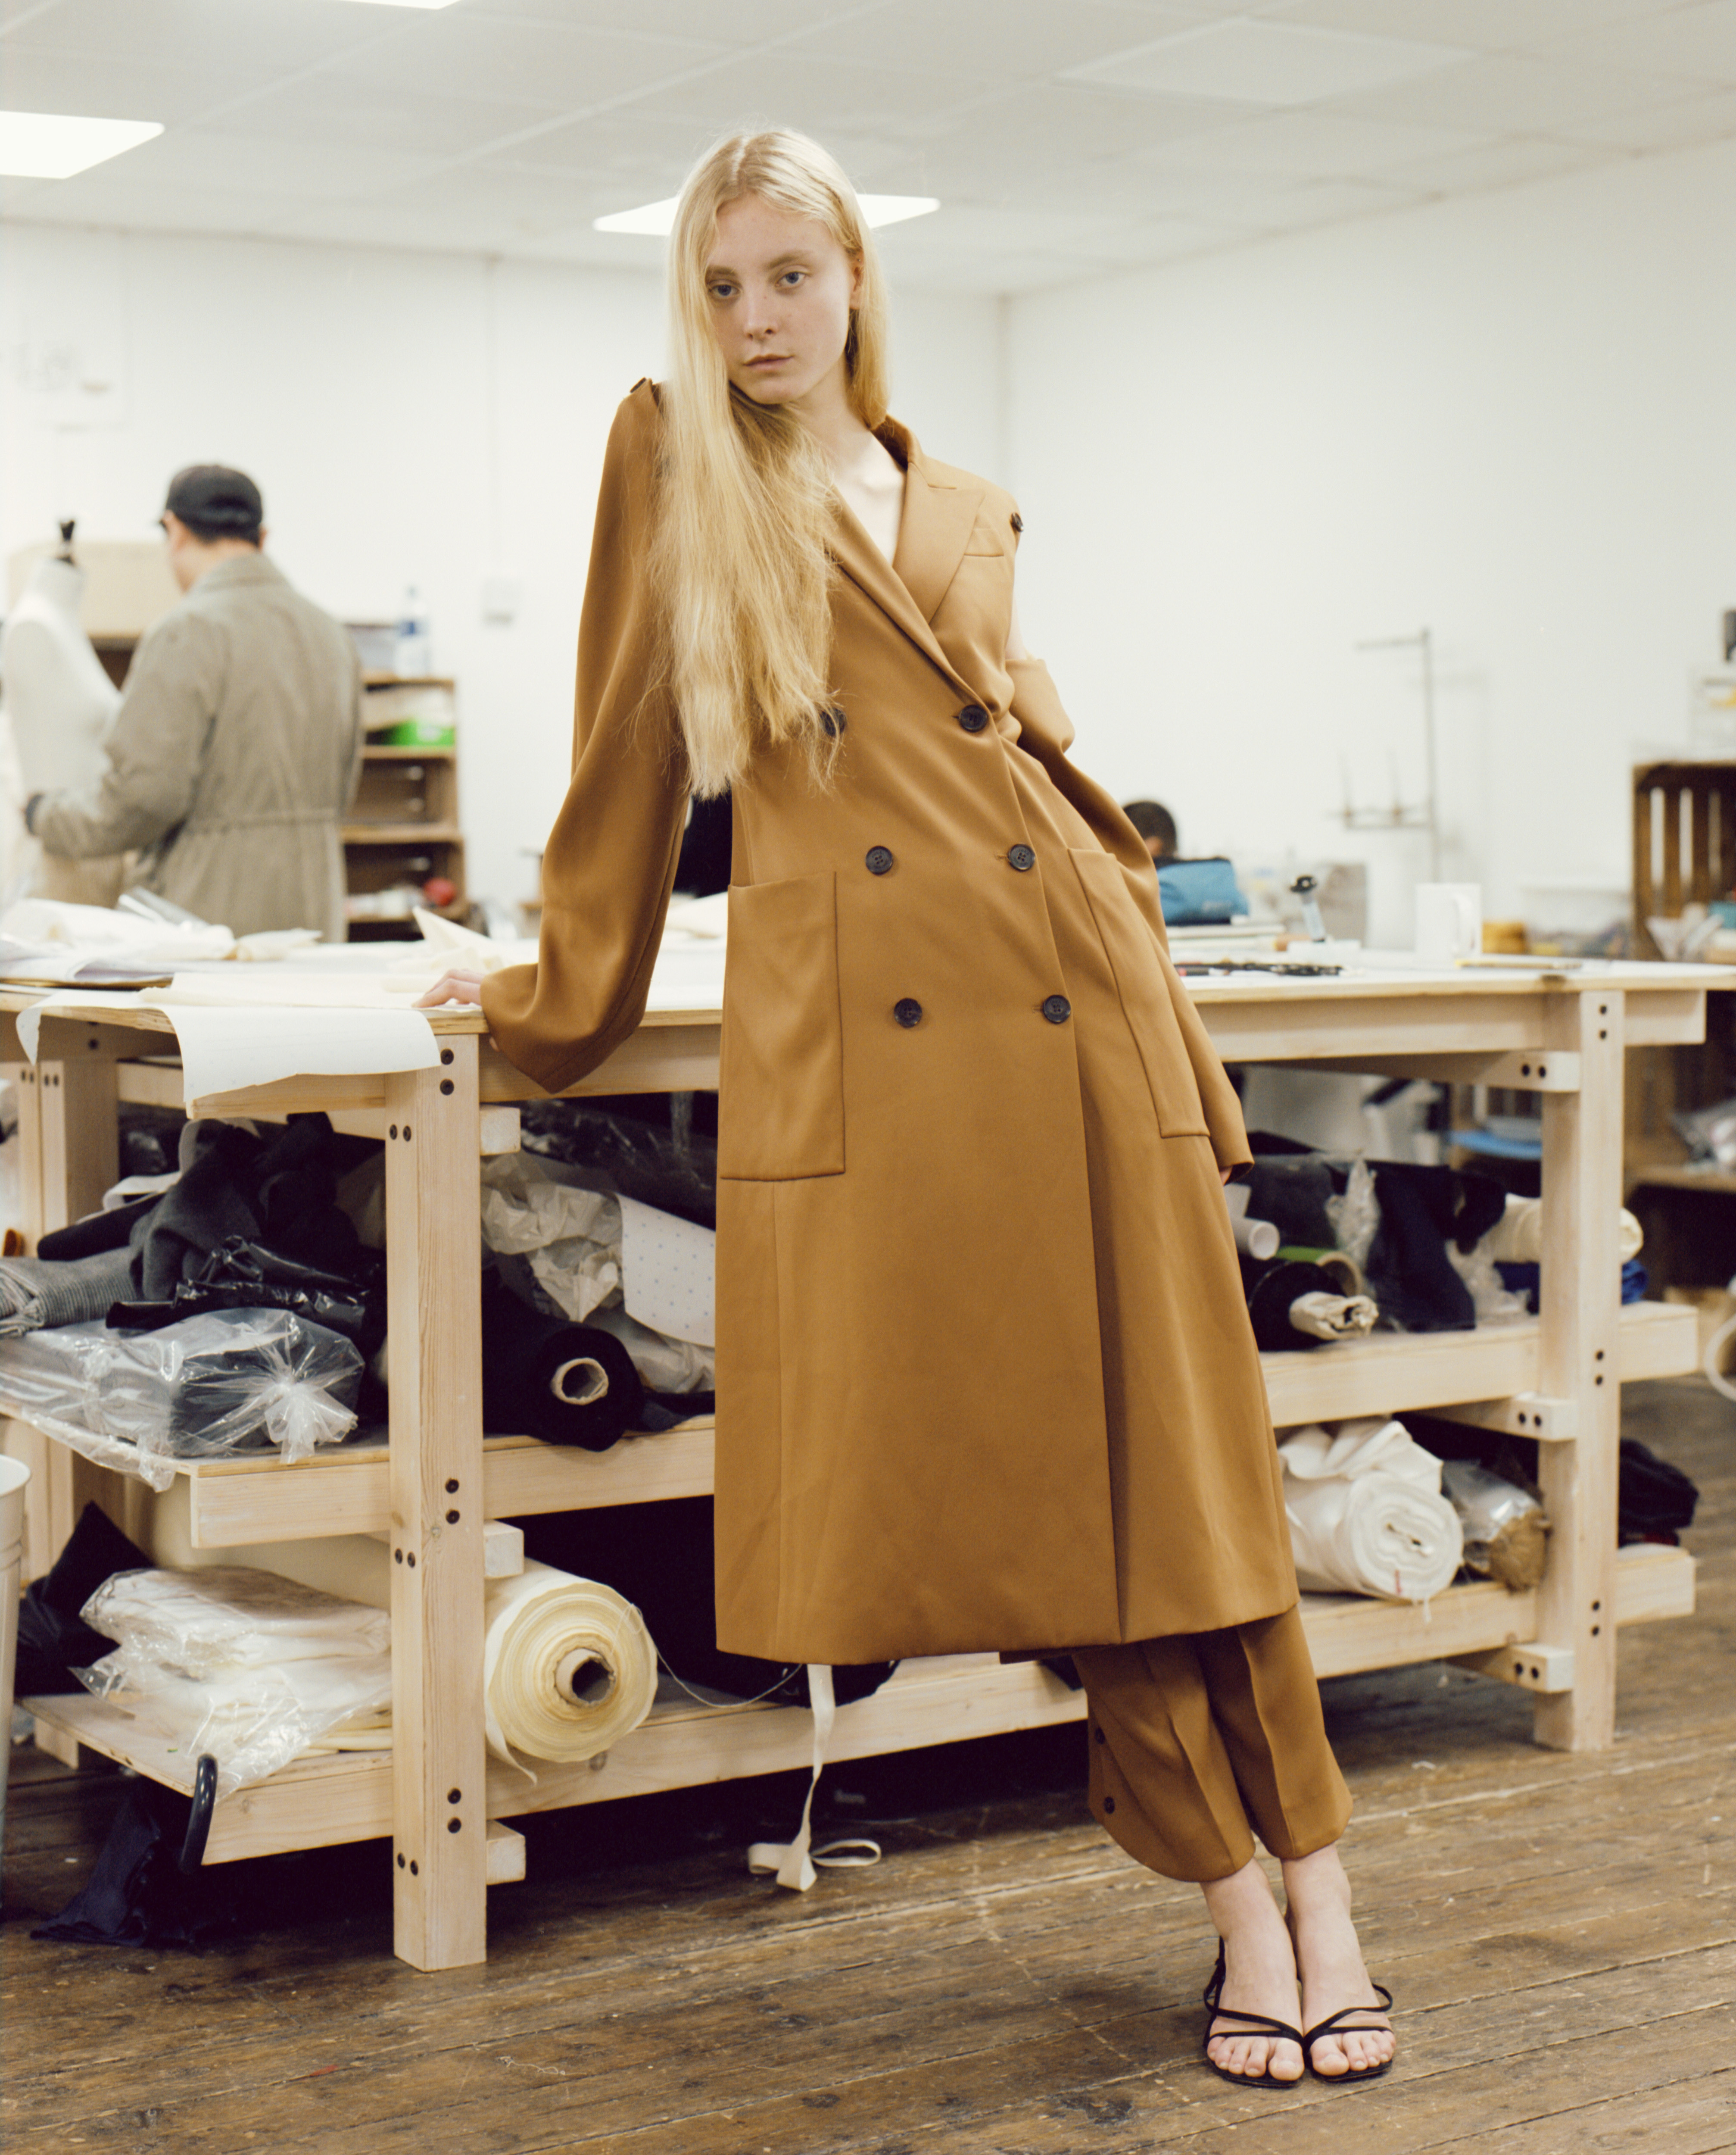 THE WINNERS OF THE LVMH PRIZE REVEALED